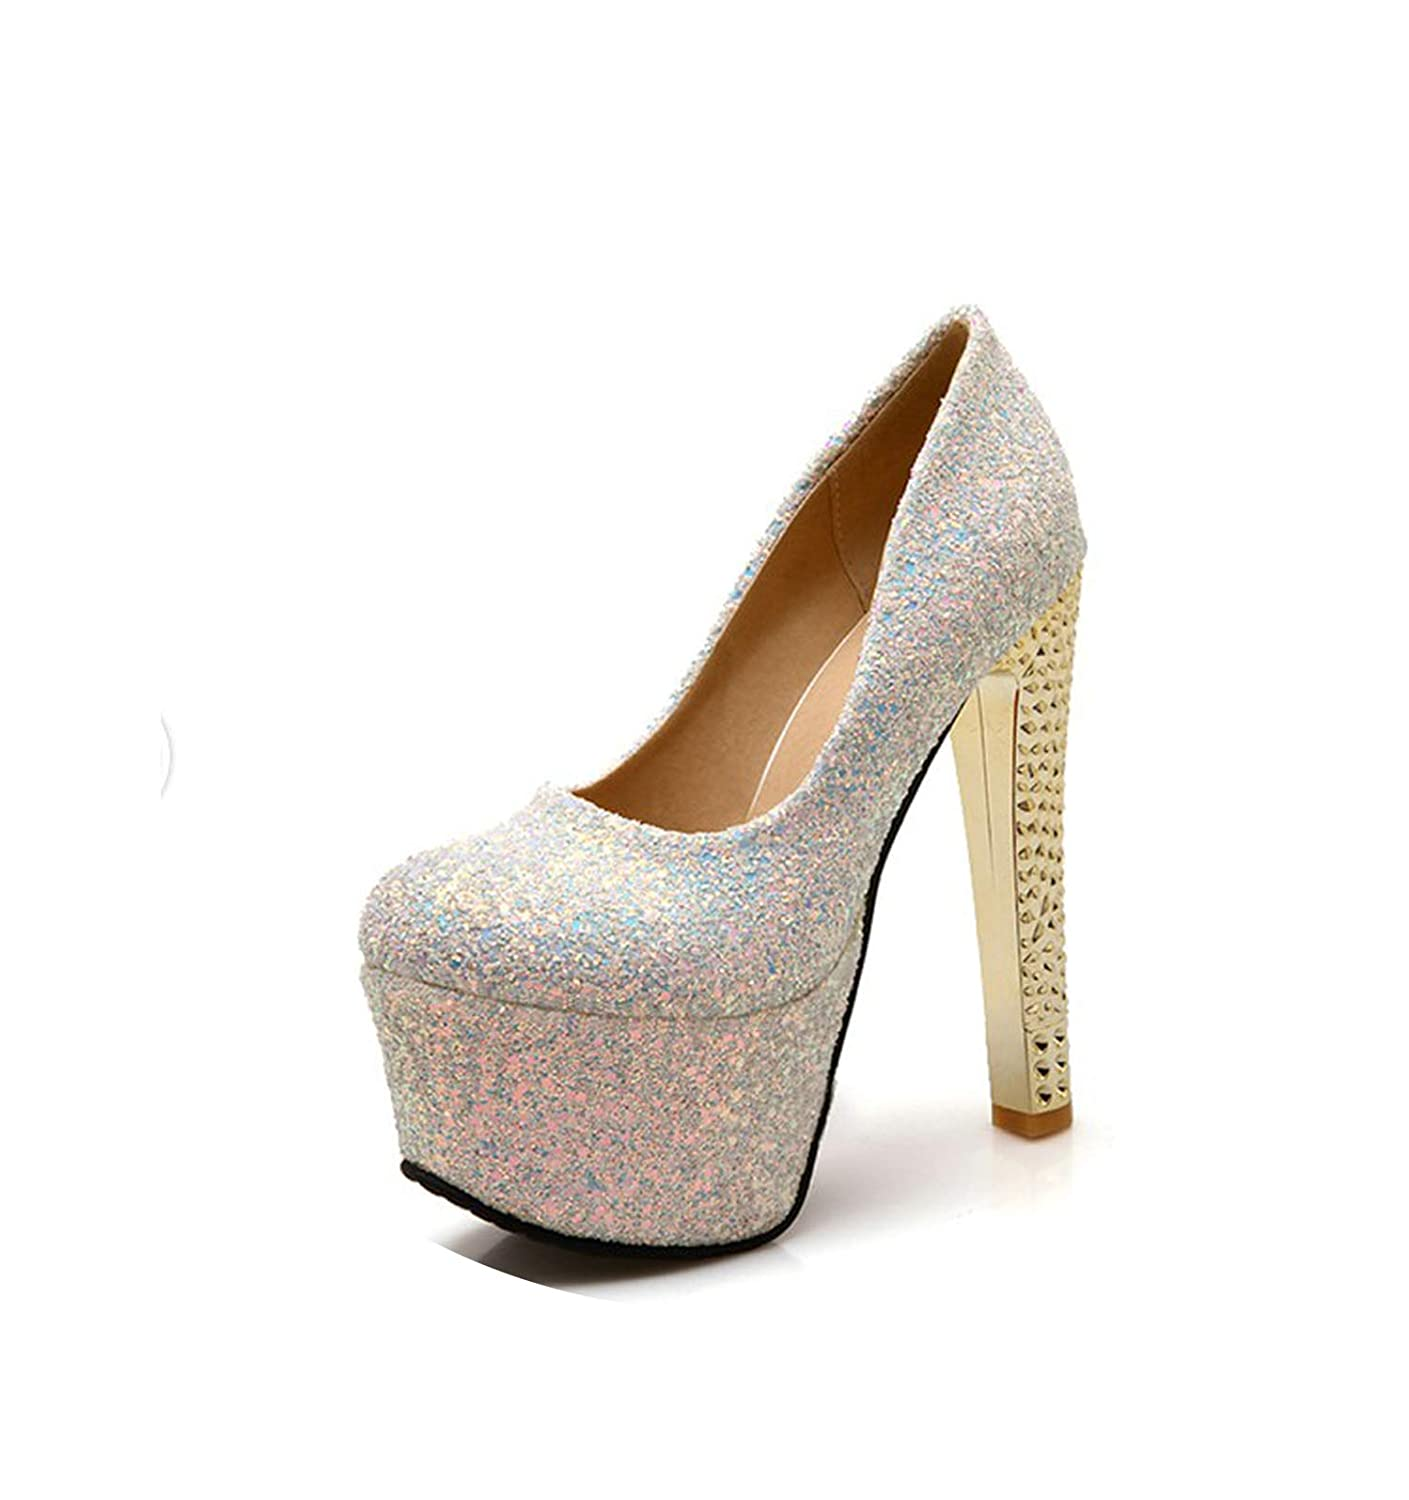 Silver LAIGEDANZI Sexy Round Toe Women Pumps Super High Heels Ladies Wedding Party shoes d-14